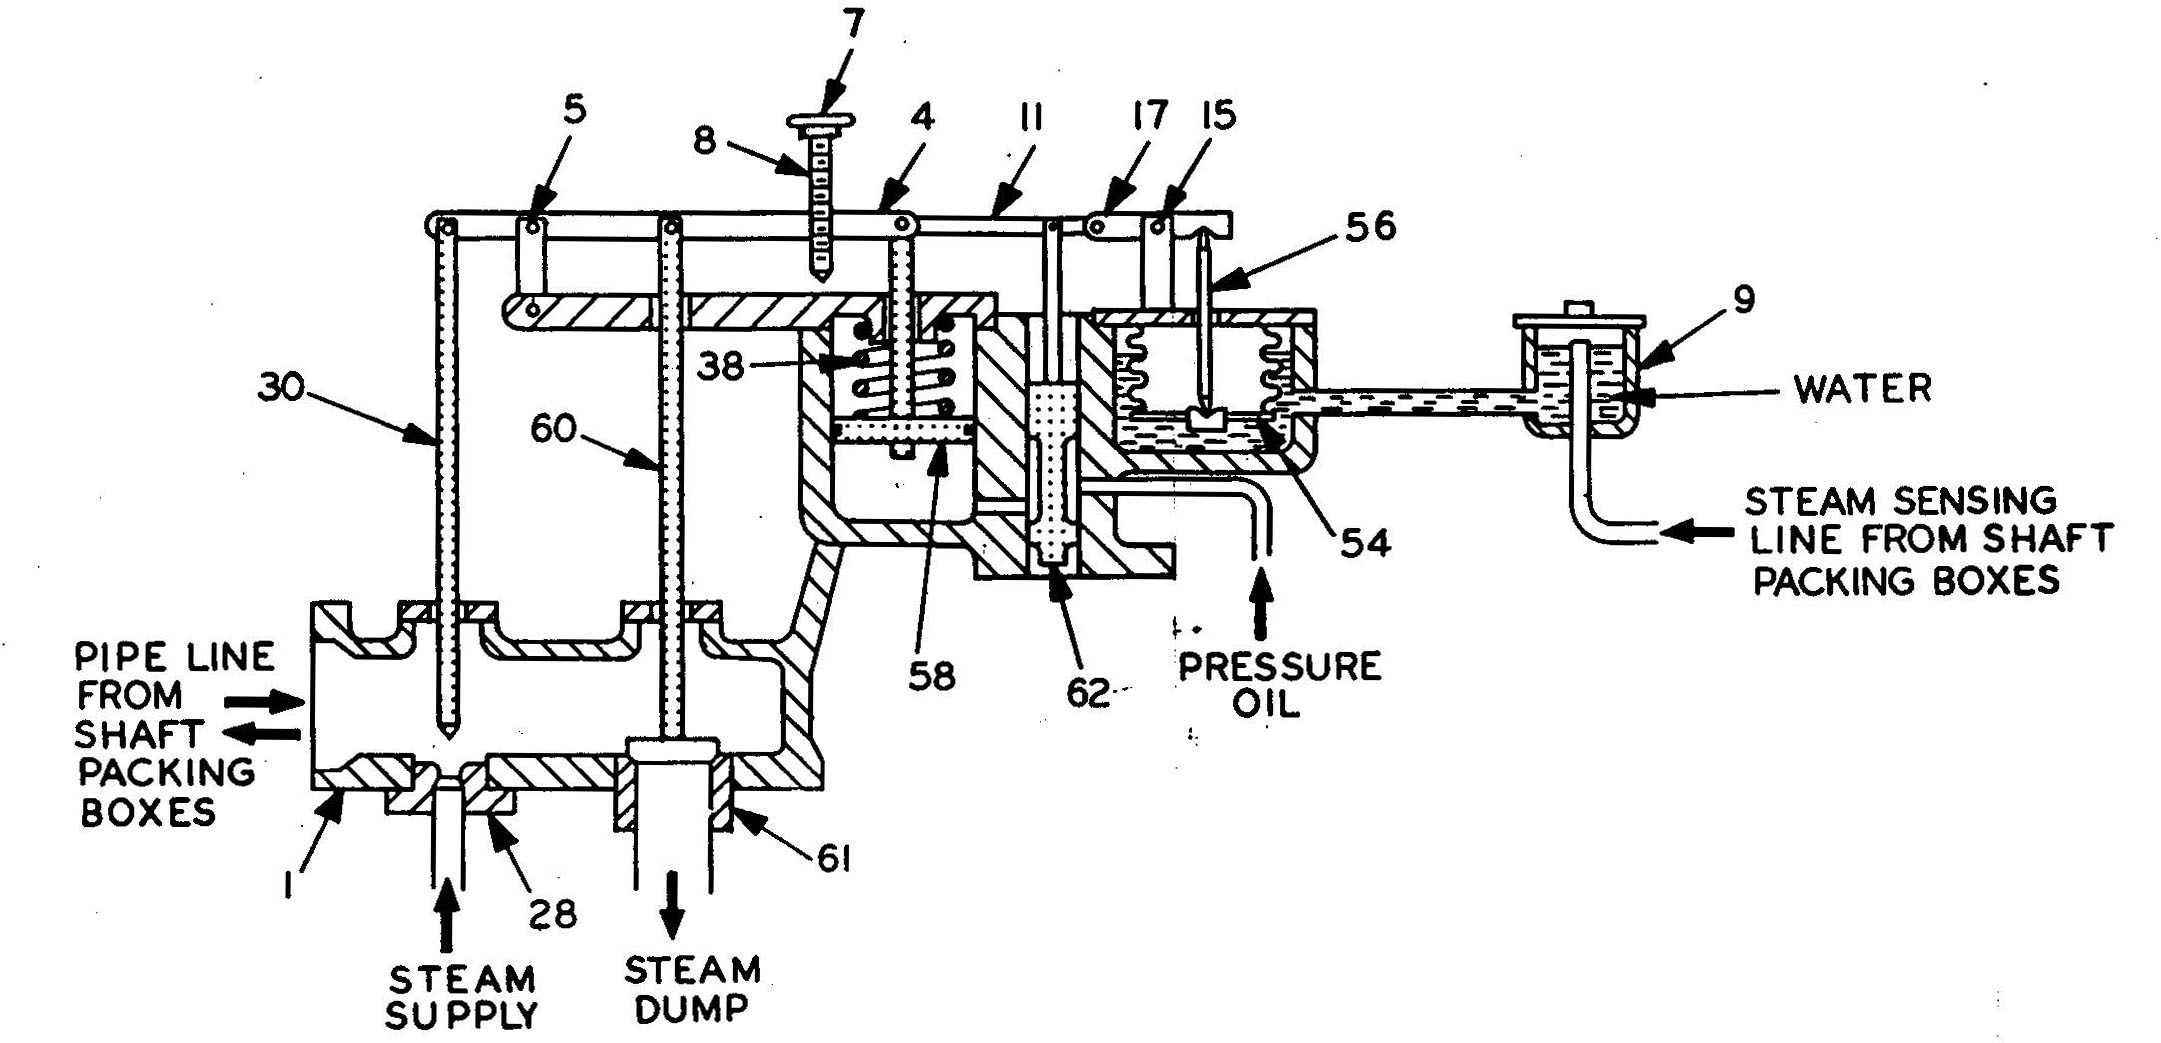 In Line Pressure Valve Wiring Diagrams Aquastat Question Redux Doityourselfcom Community Forums Tsps Engineering Manual Balancing Inline On Backhoe